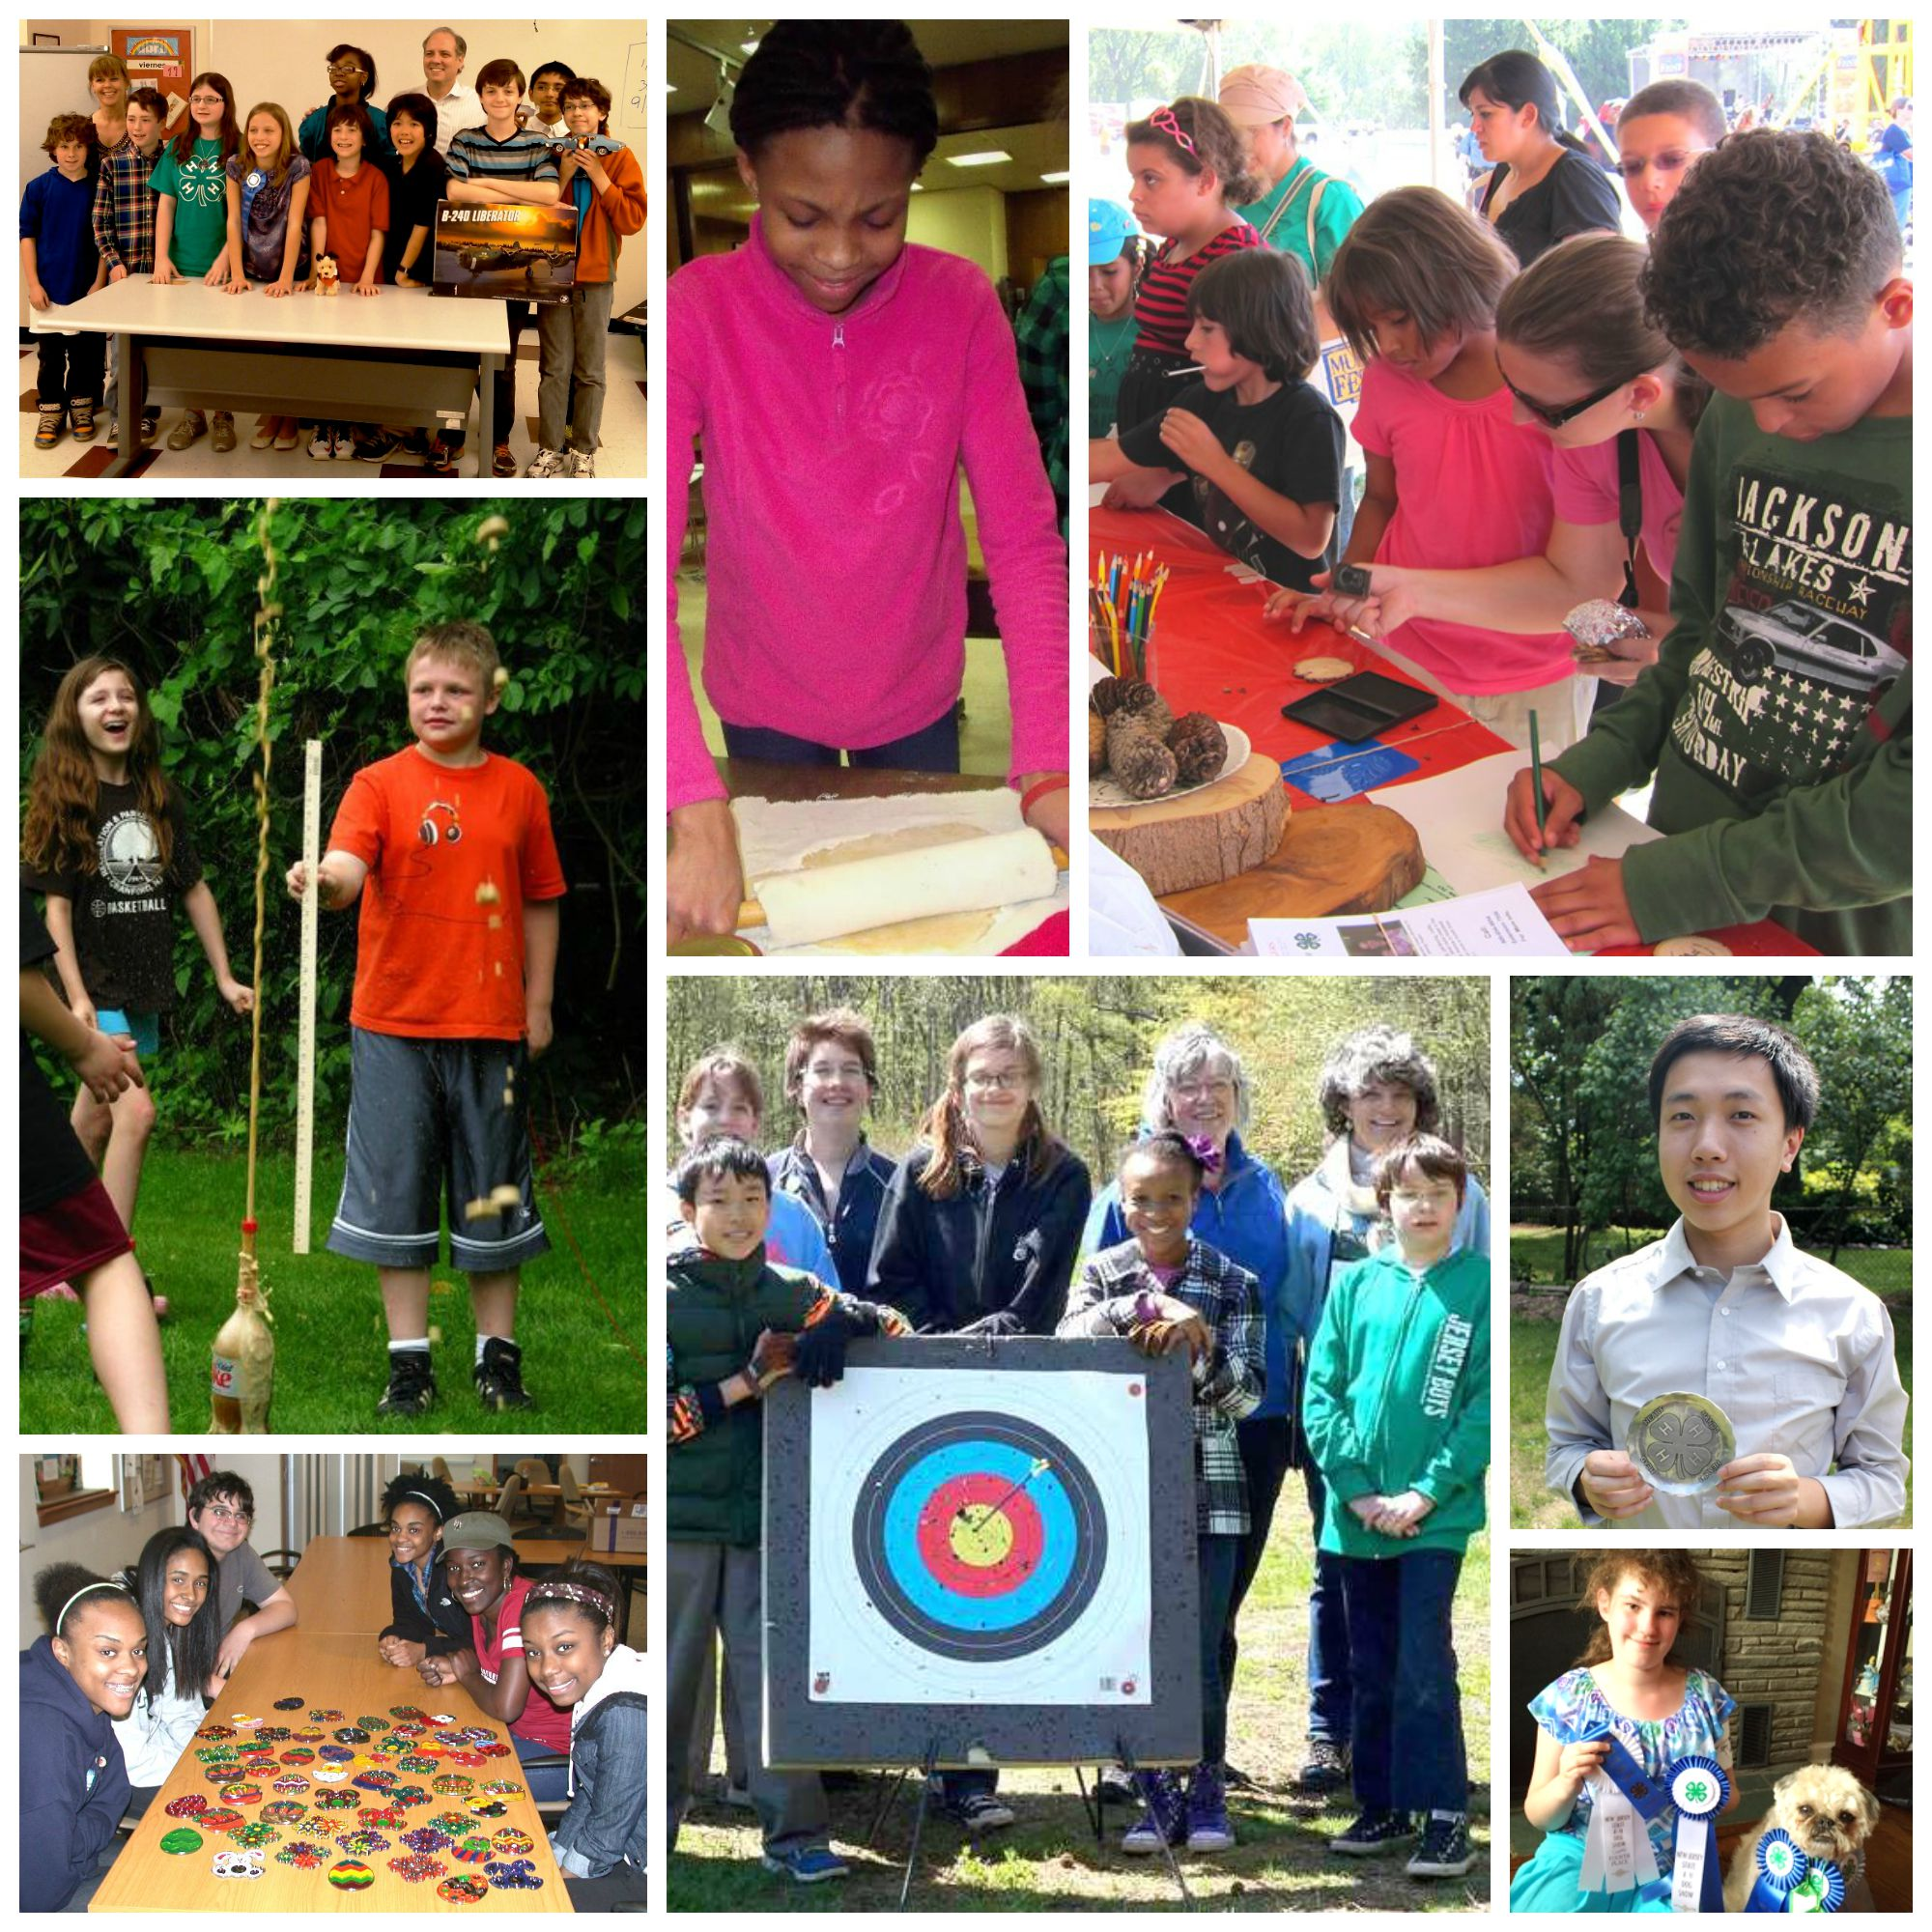 Union County NJ 4-H open house collage 2015